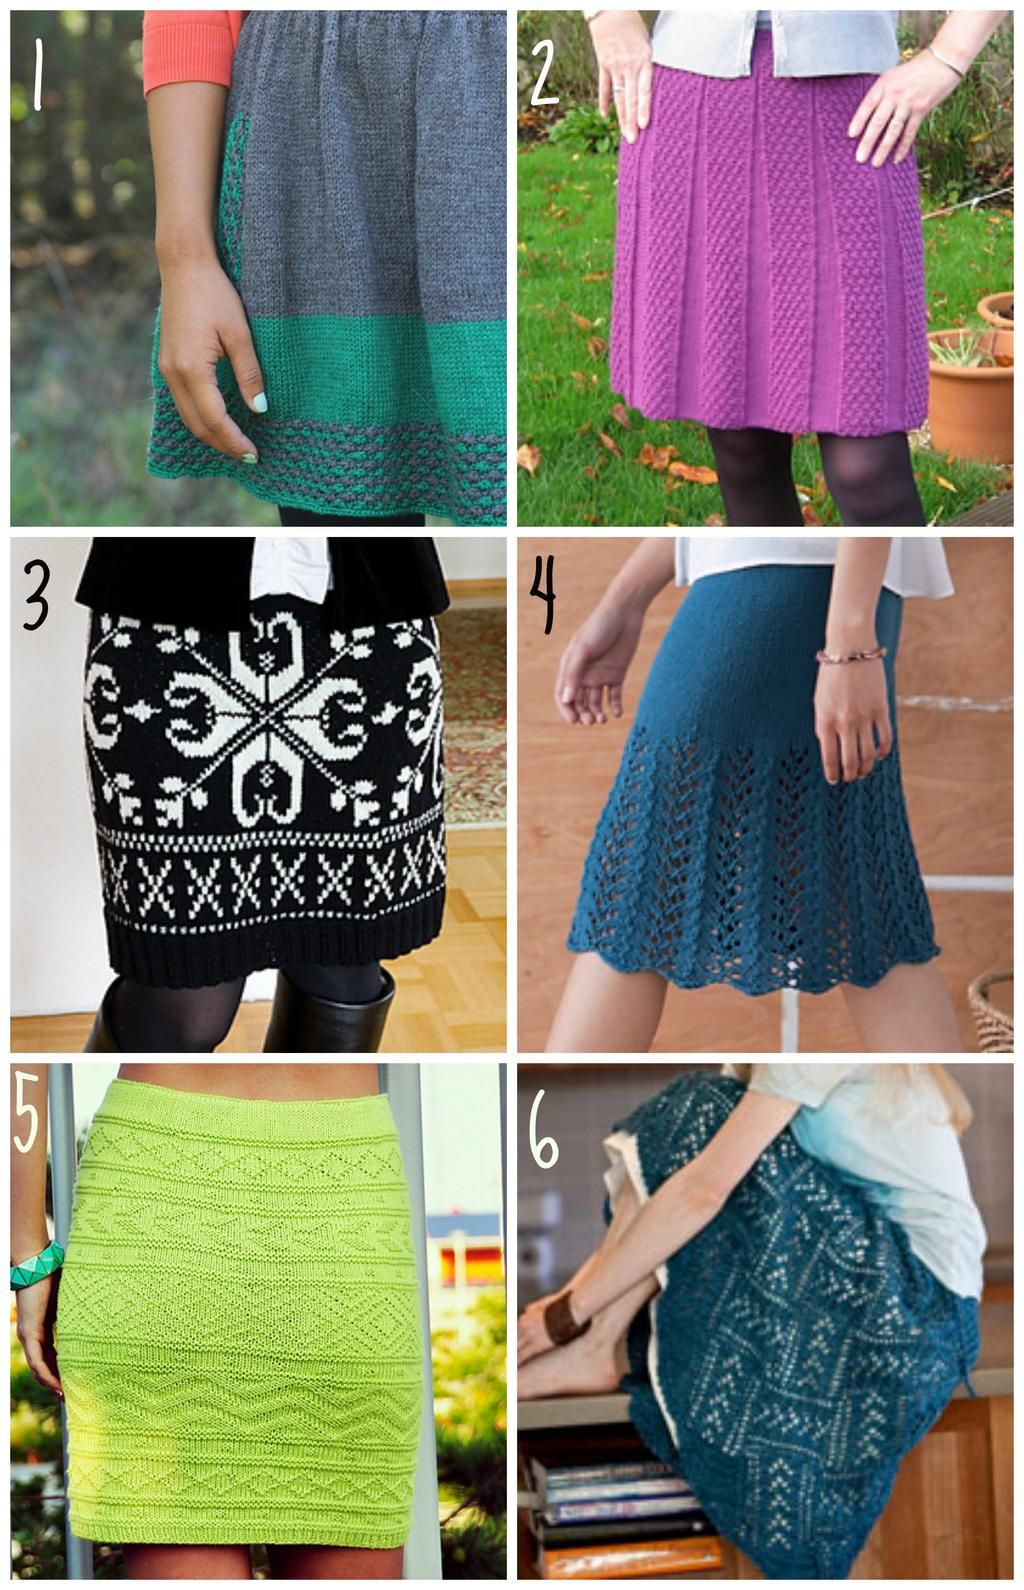 How do we feel about knitted skirts? Do you own one? Would you wear ...